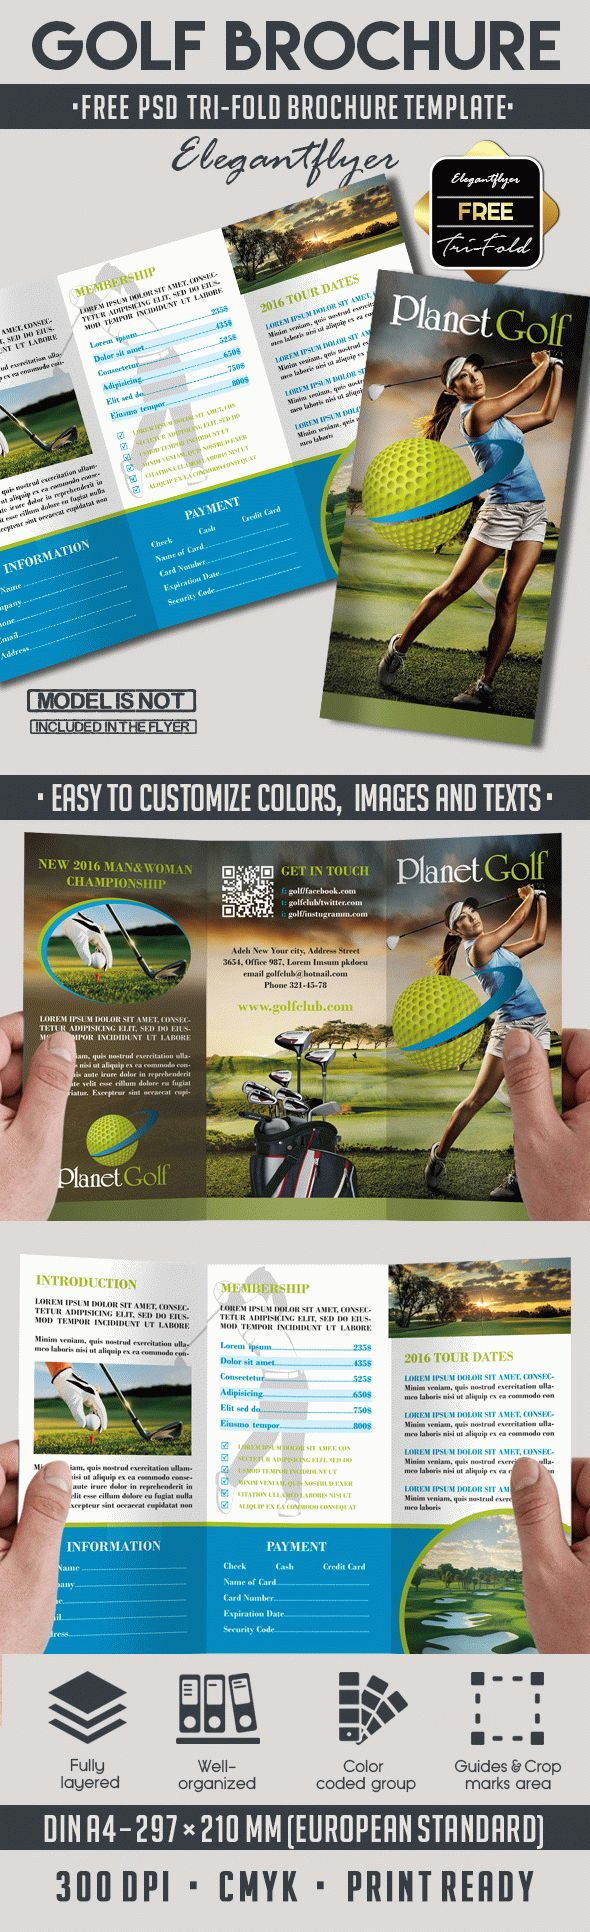 Golf club free psd tri fold psd brochure template by for Free brochure psd templates